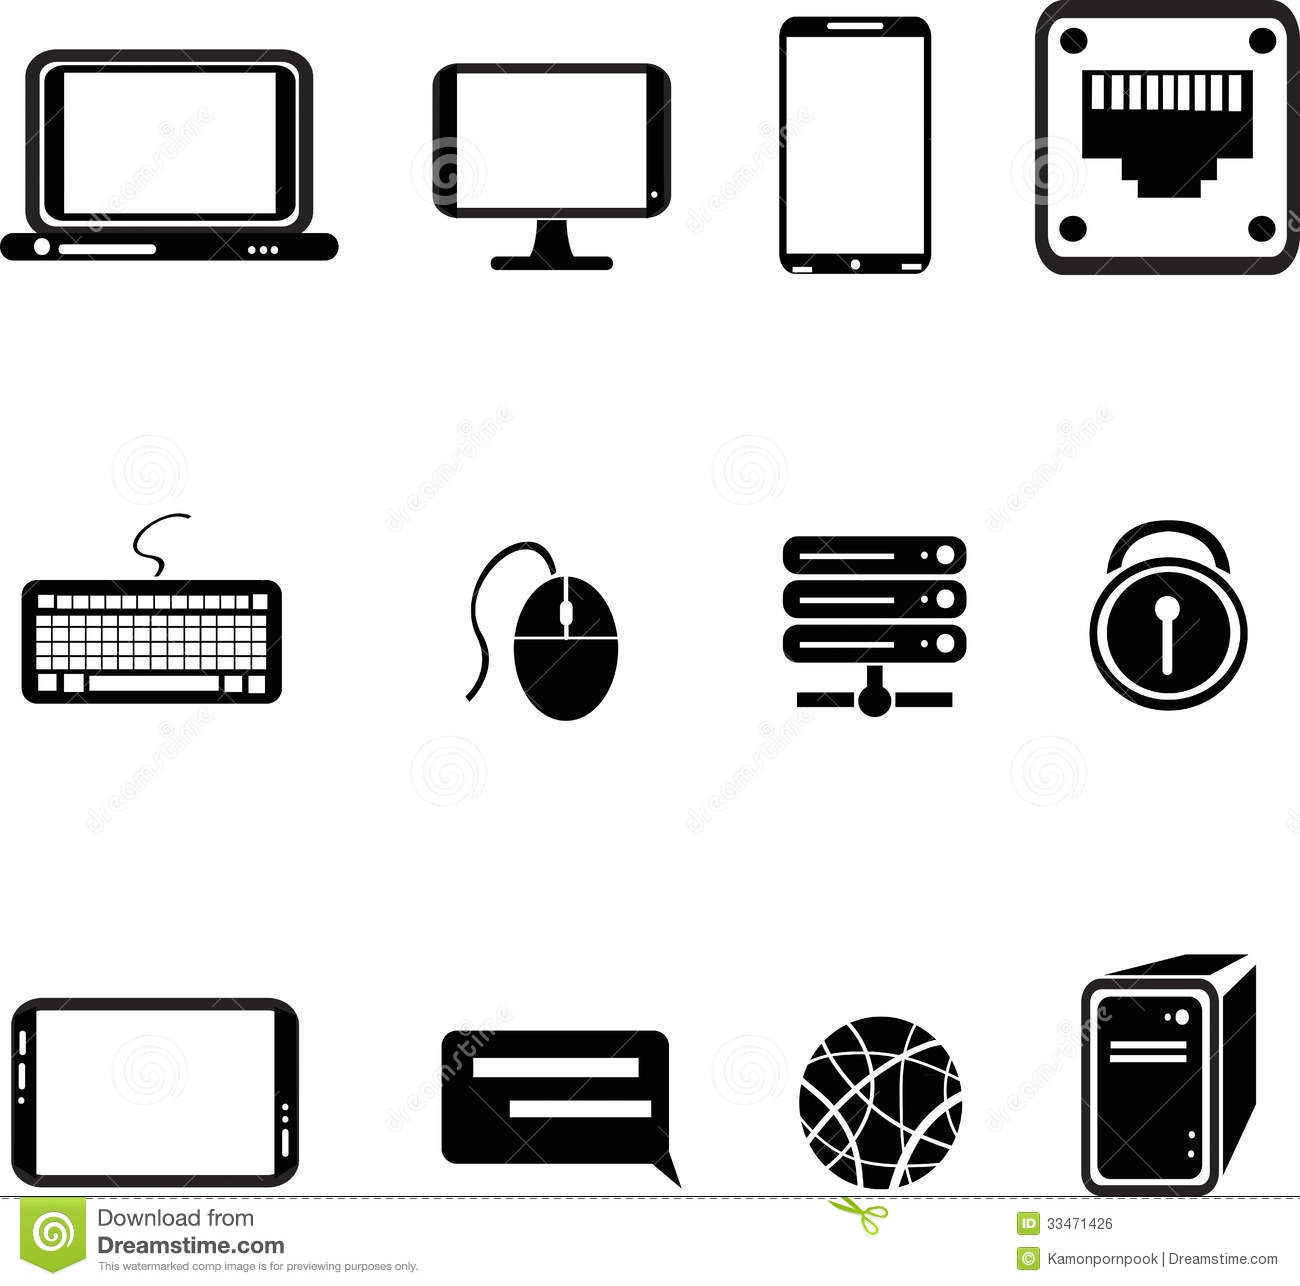 Computer Equipment Icons Royalty Free Stock Image